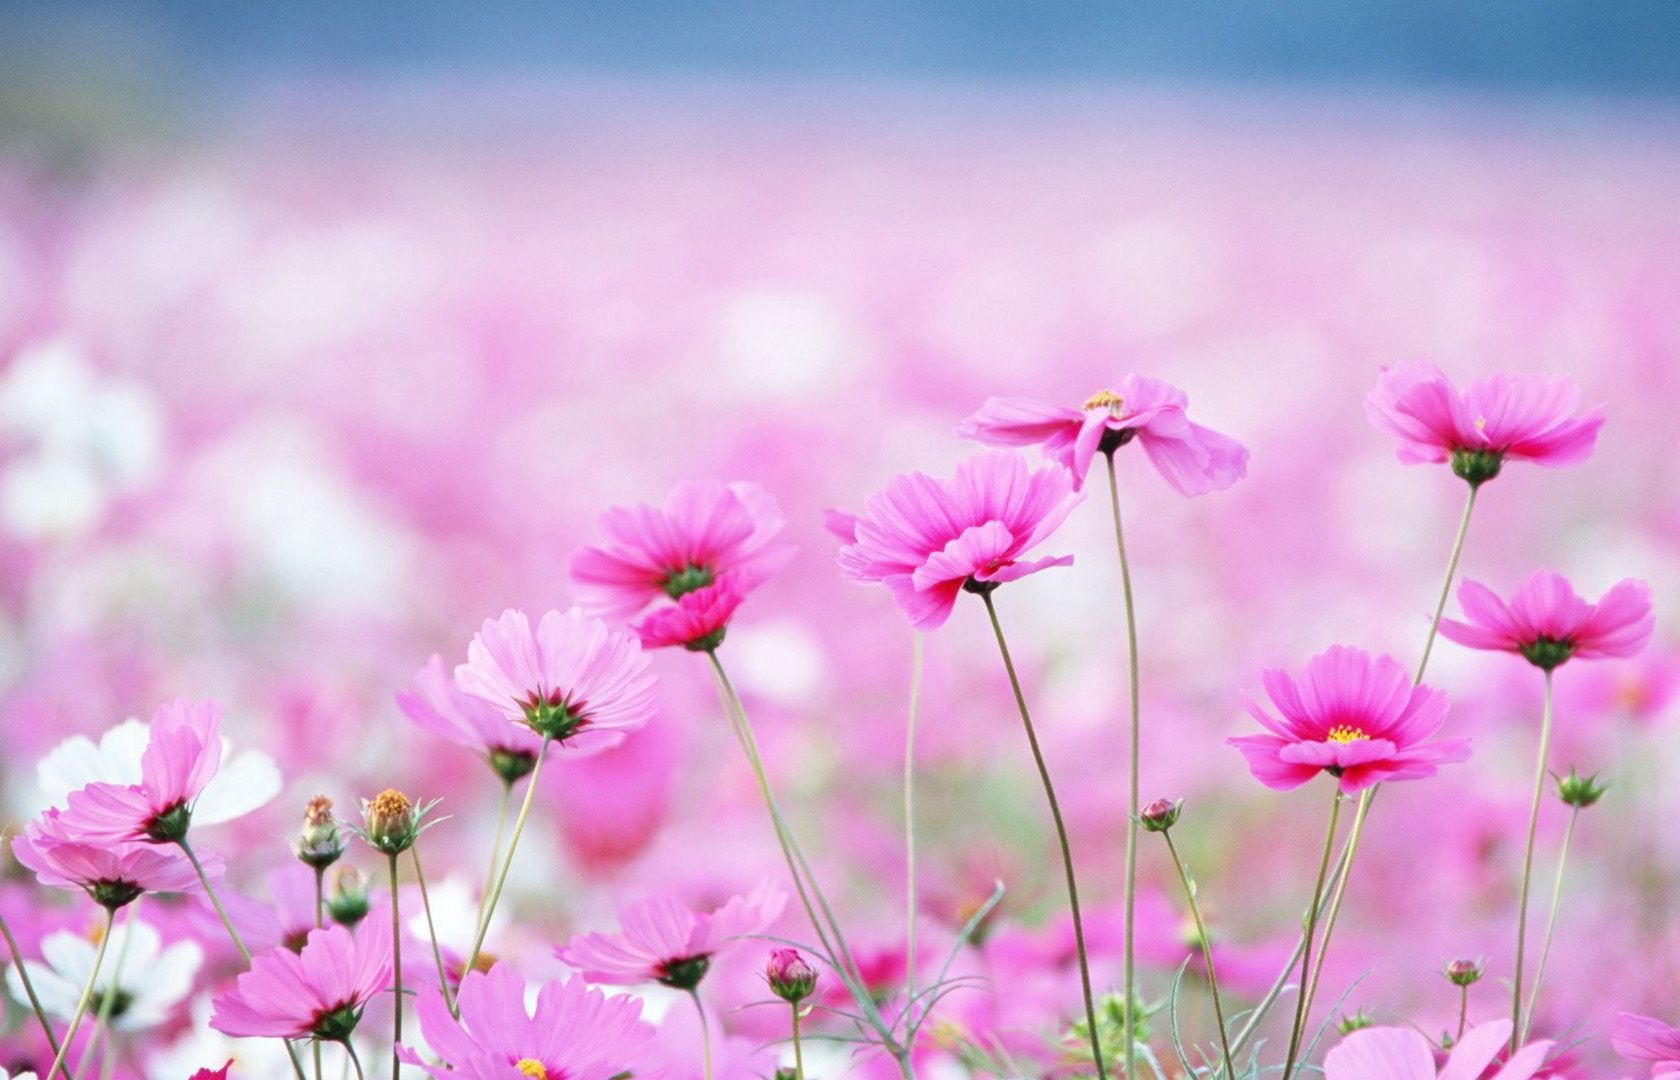 40 beautiful flower wallpapers free to download | pinterest | flower